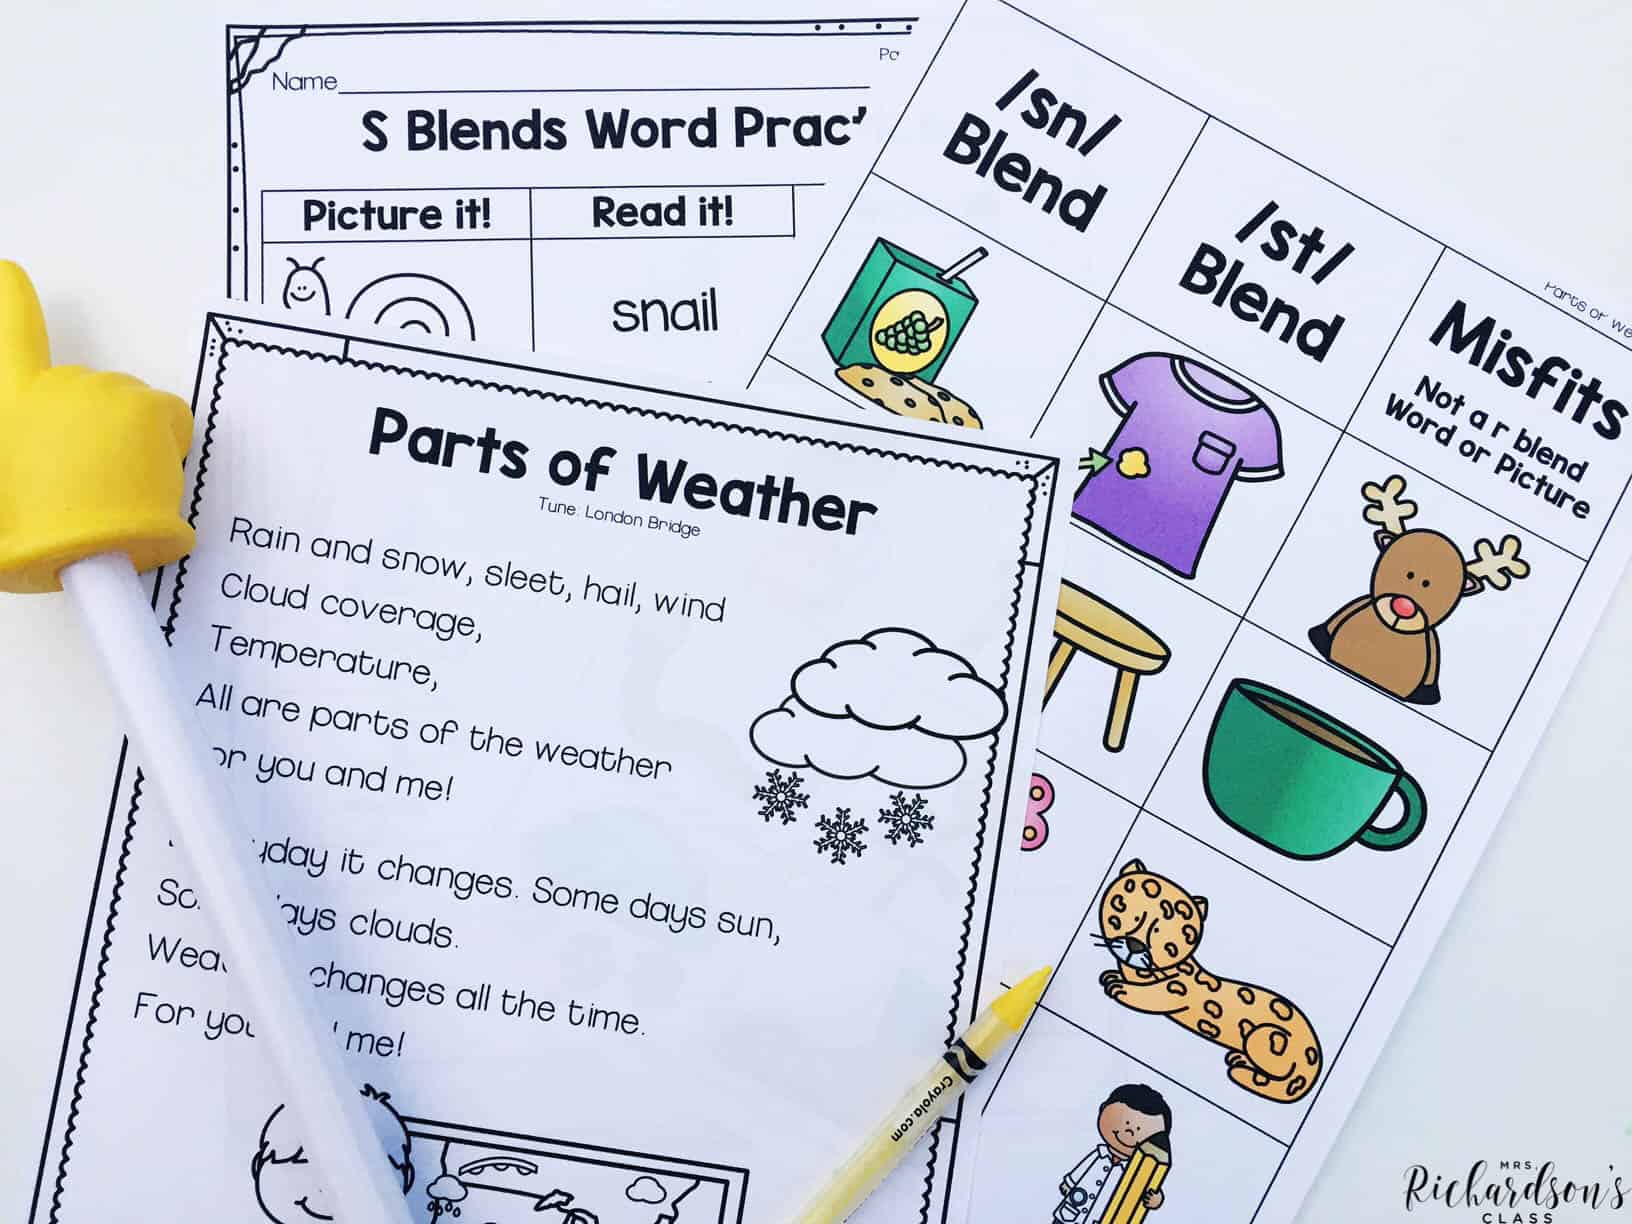 Integrating reading into science is so much fun for our first grade students! They will enjoy learning about the parts of weather while singing and sorting blends.